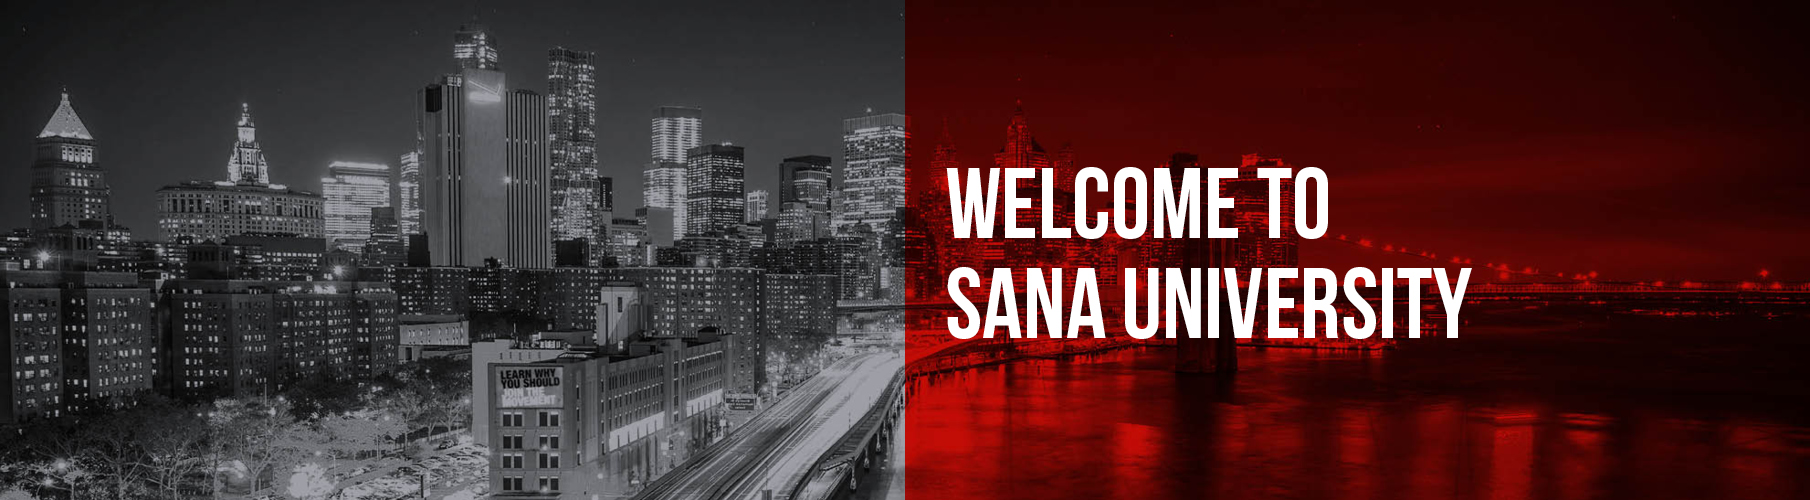 Welcome to Sana University